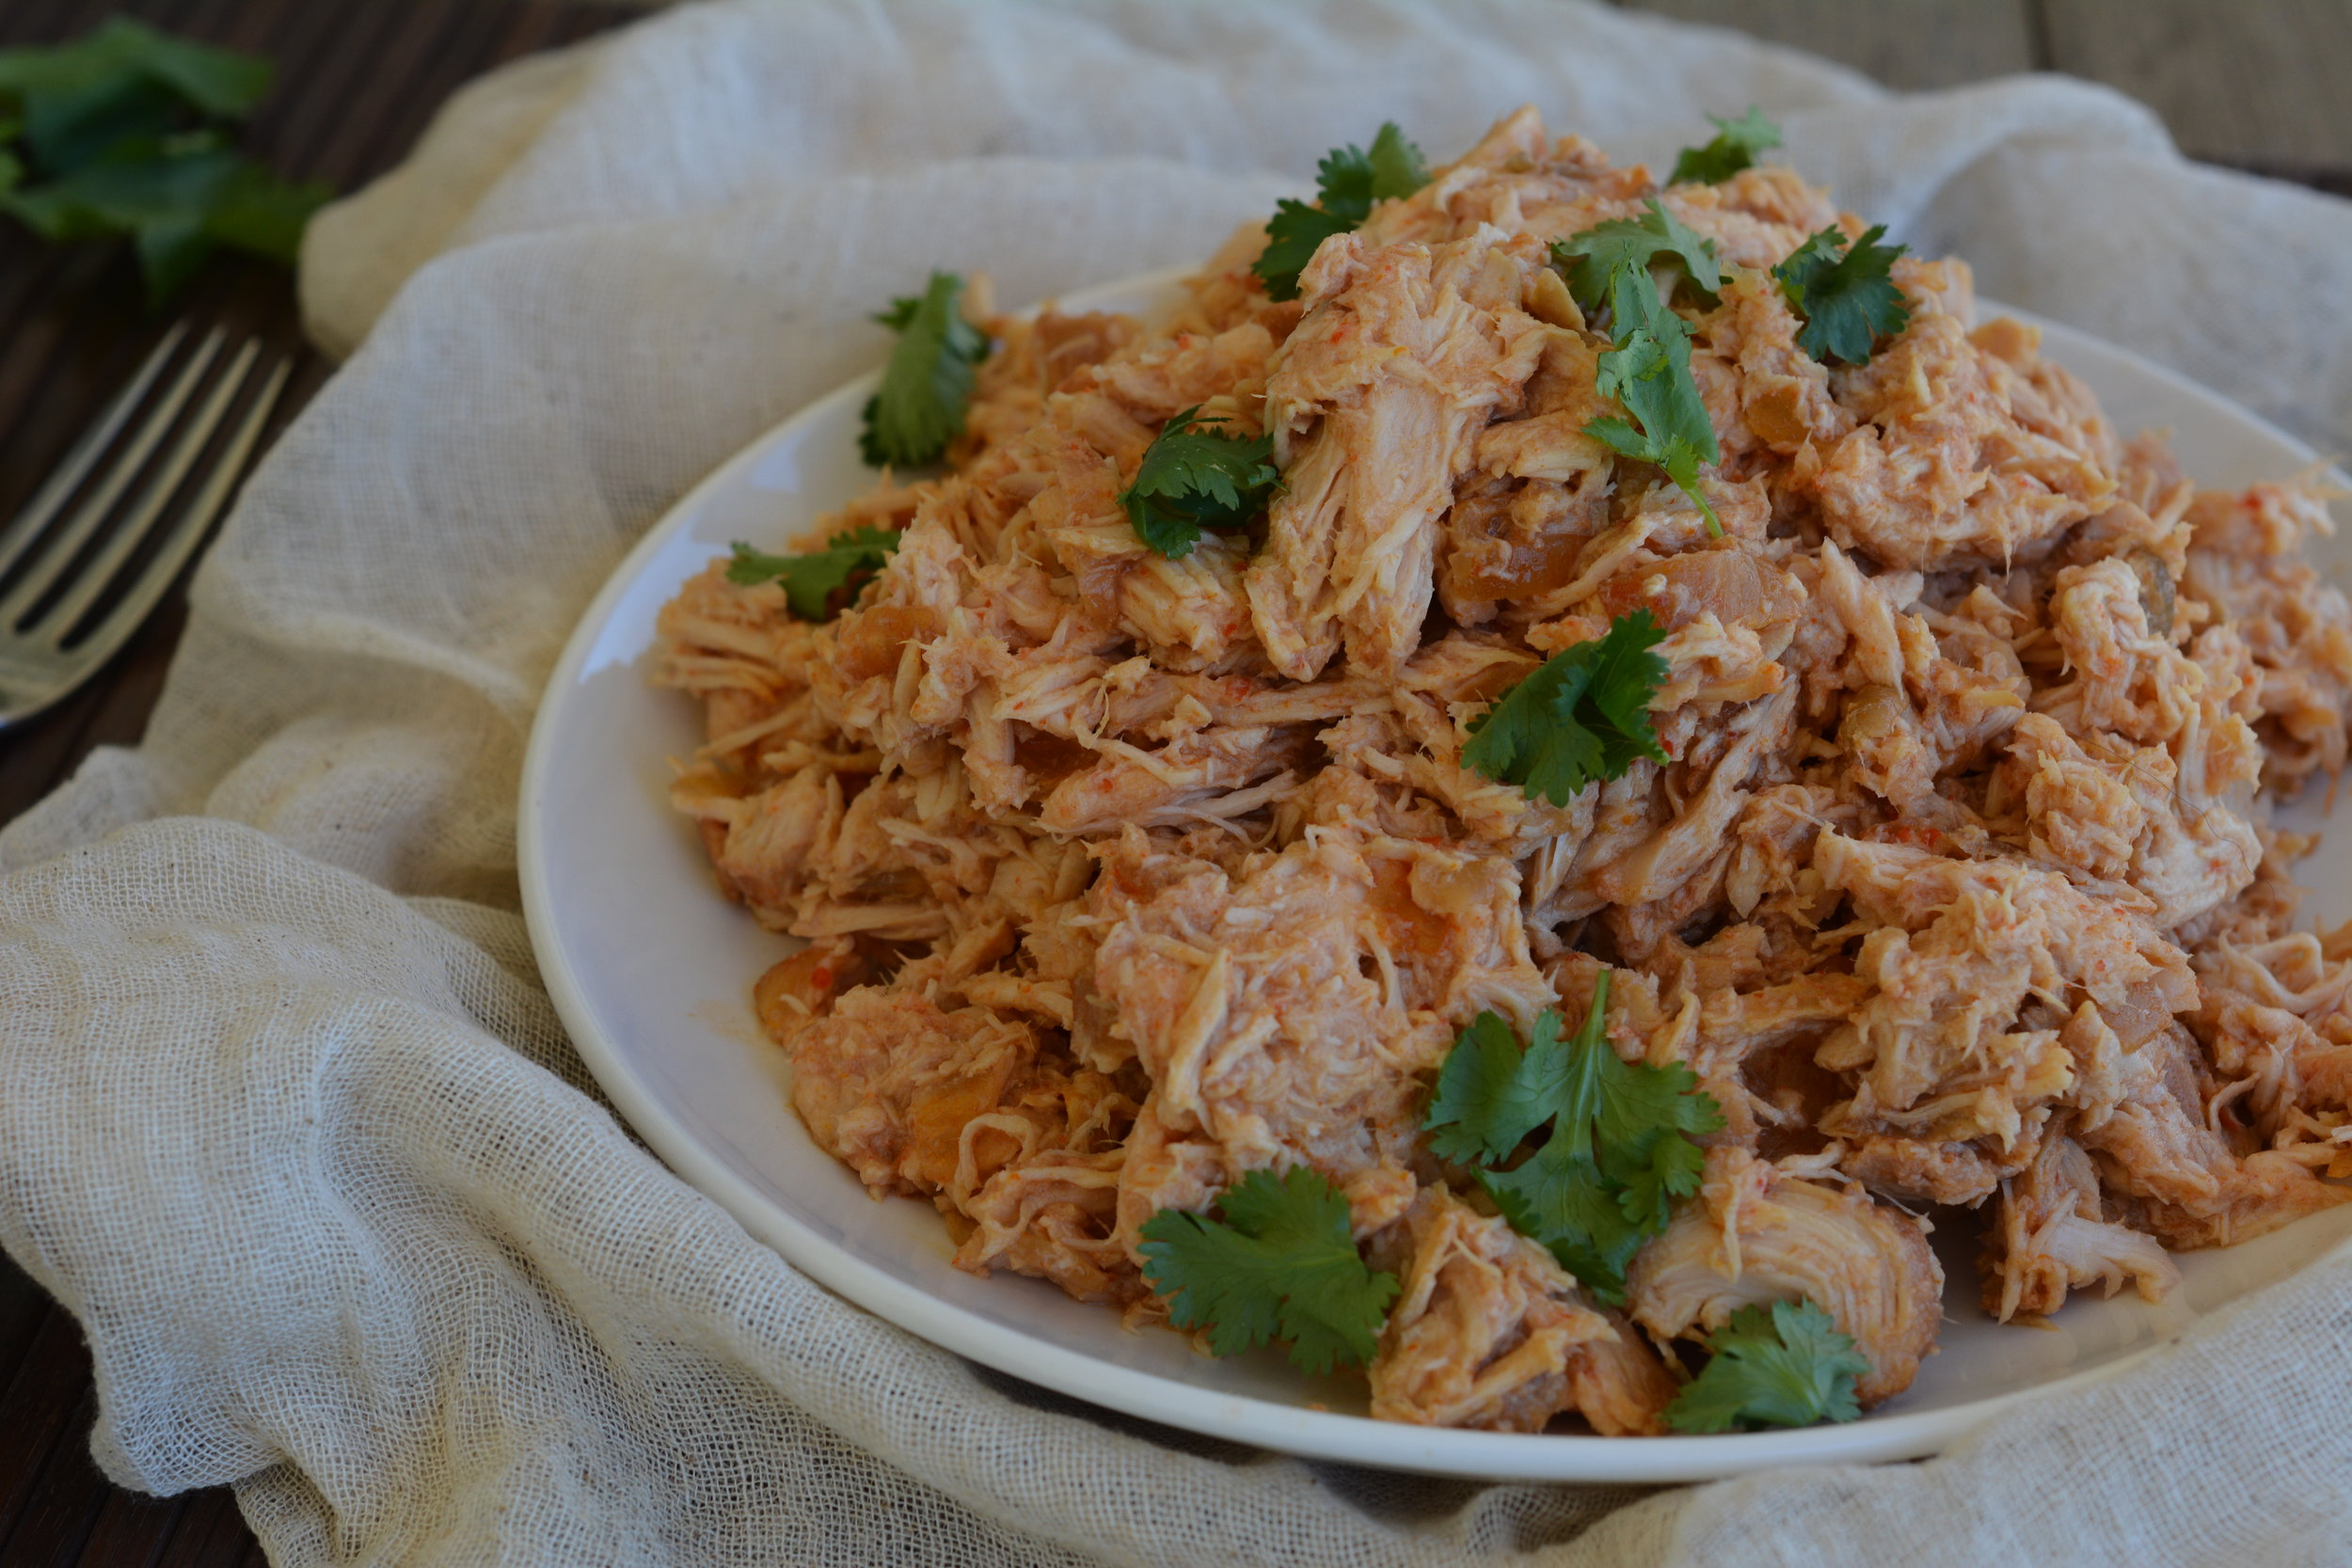 http://myactiveroots.com/blog/2016/7/6/quick-and-easy-sriracha-slow-cooker-chicken